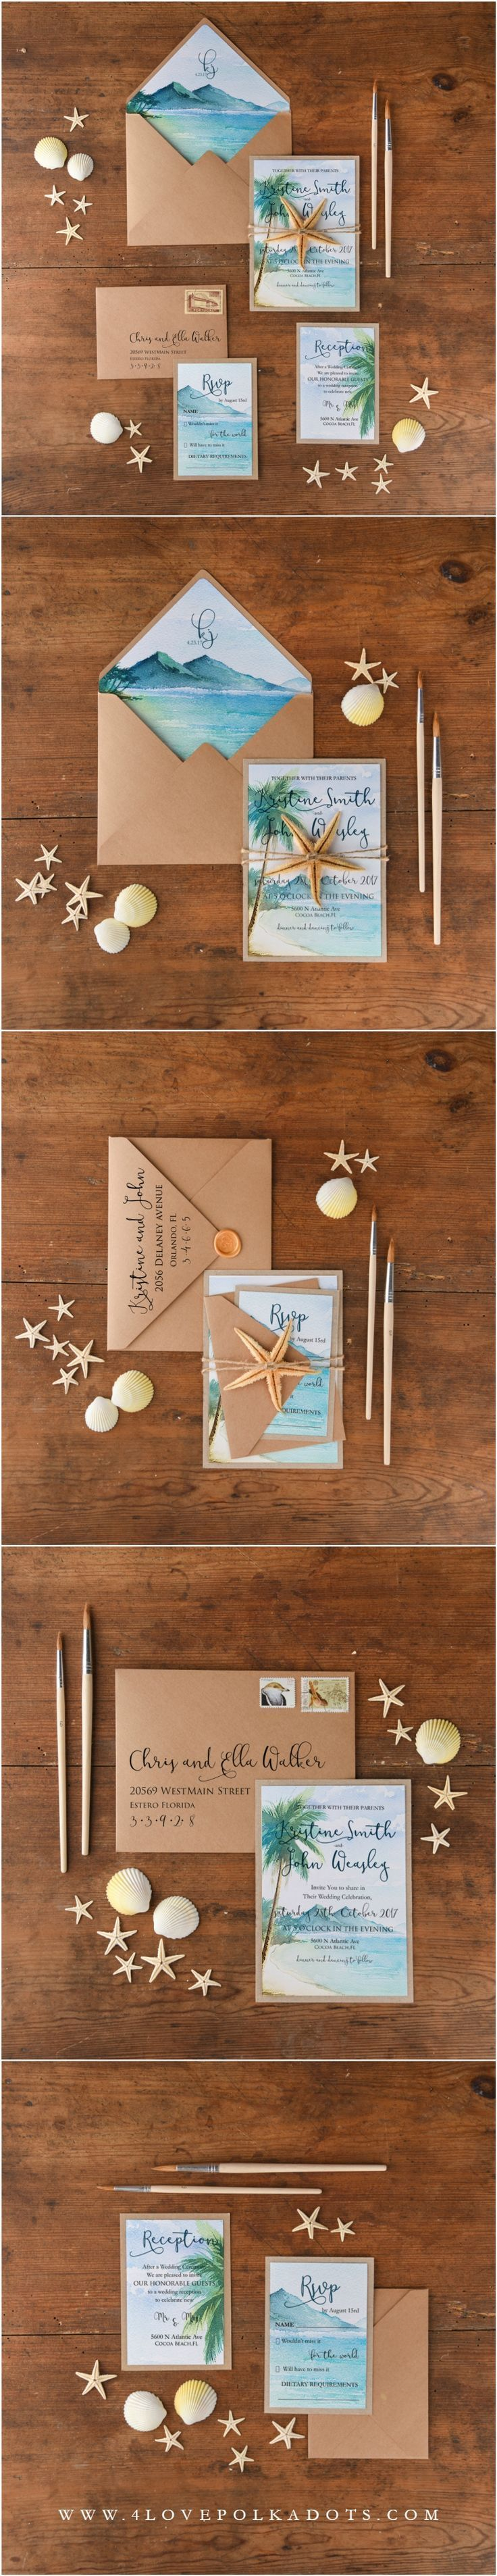 I love it !!! Beach wedding invitation !! just by looking at it makes me feel i wanna be there now and can't wait for that day to come !!! D*xx